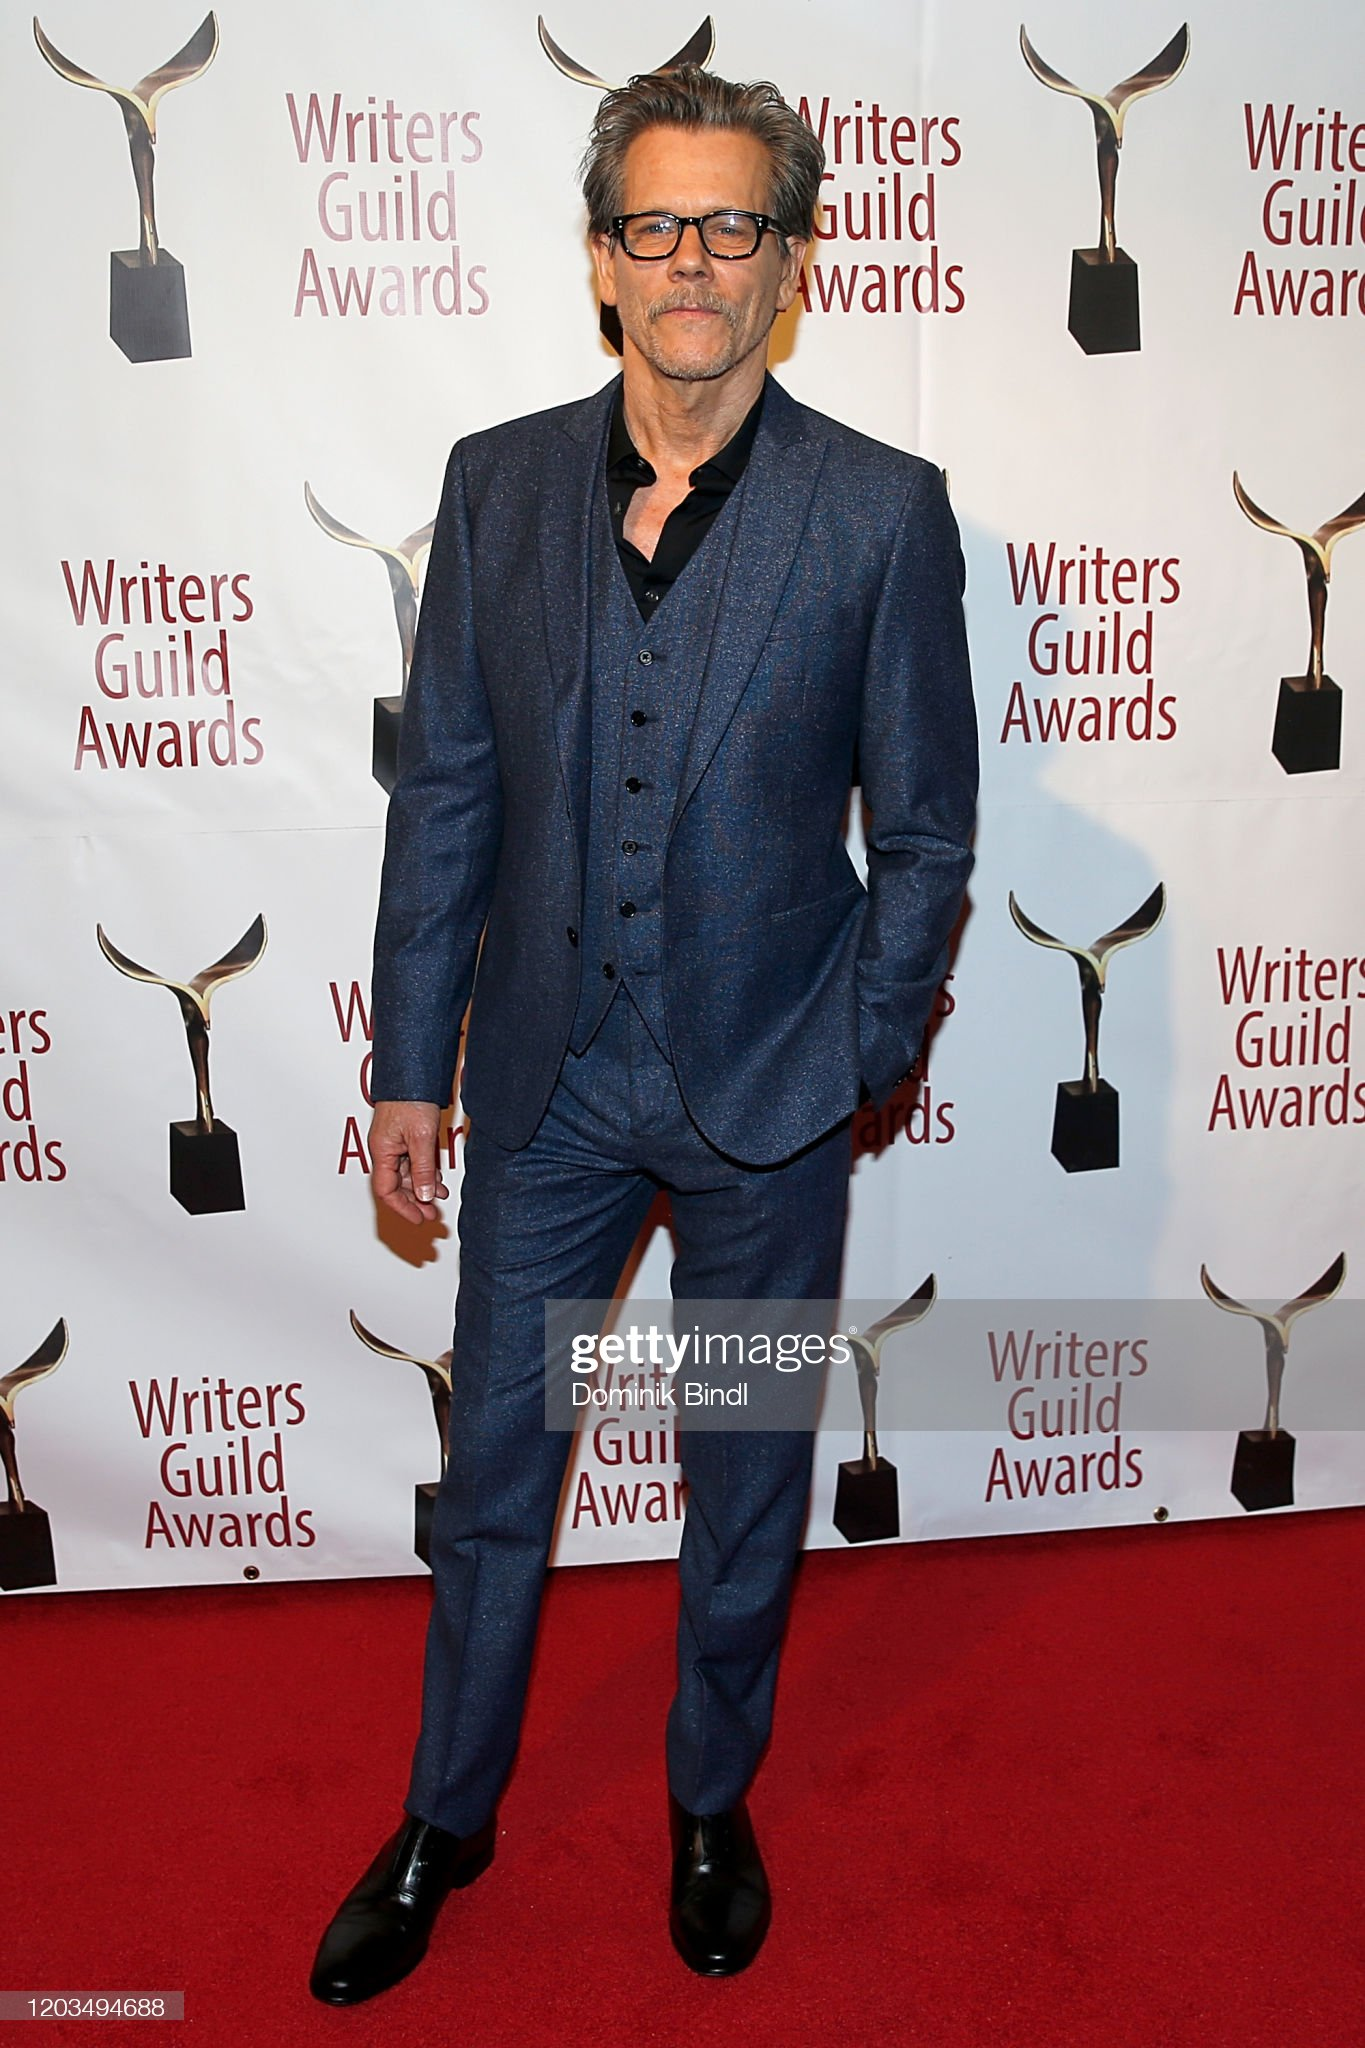 ¿Cuánto mide Kevin Bacon? - Altura - Real height Kevin-bacon-attends-the-72nd-writers-guild-awards-at-edison-ballroom-picture-id1203494688?s=2048x2048